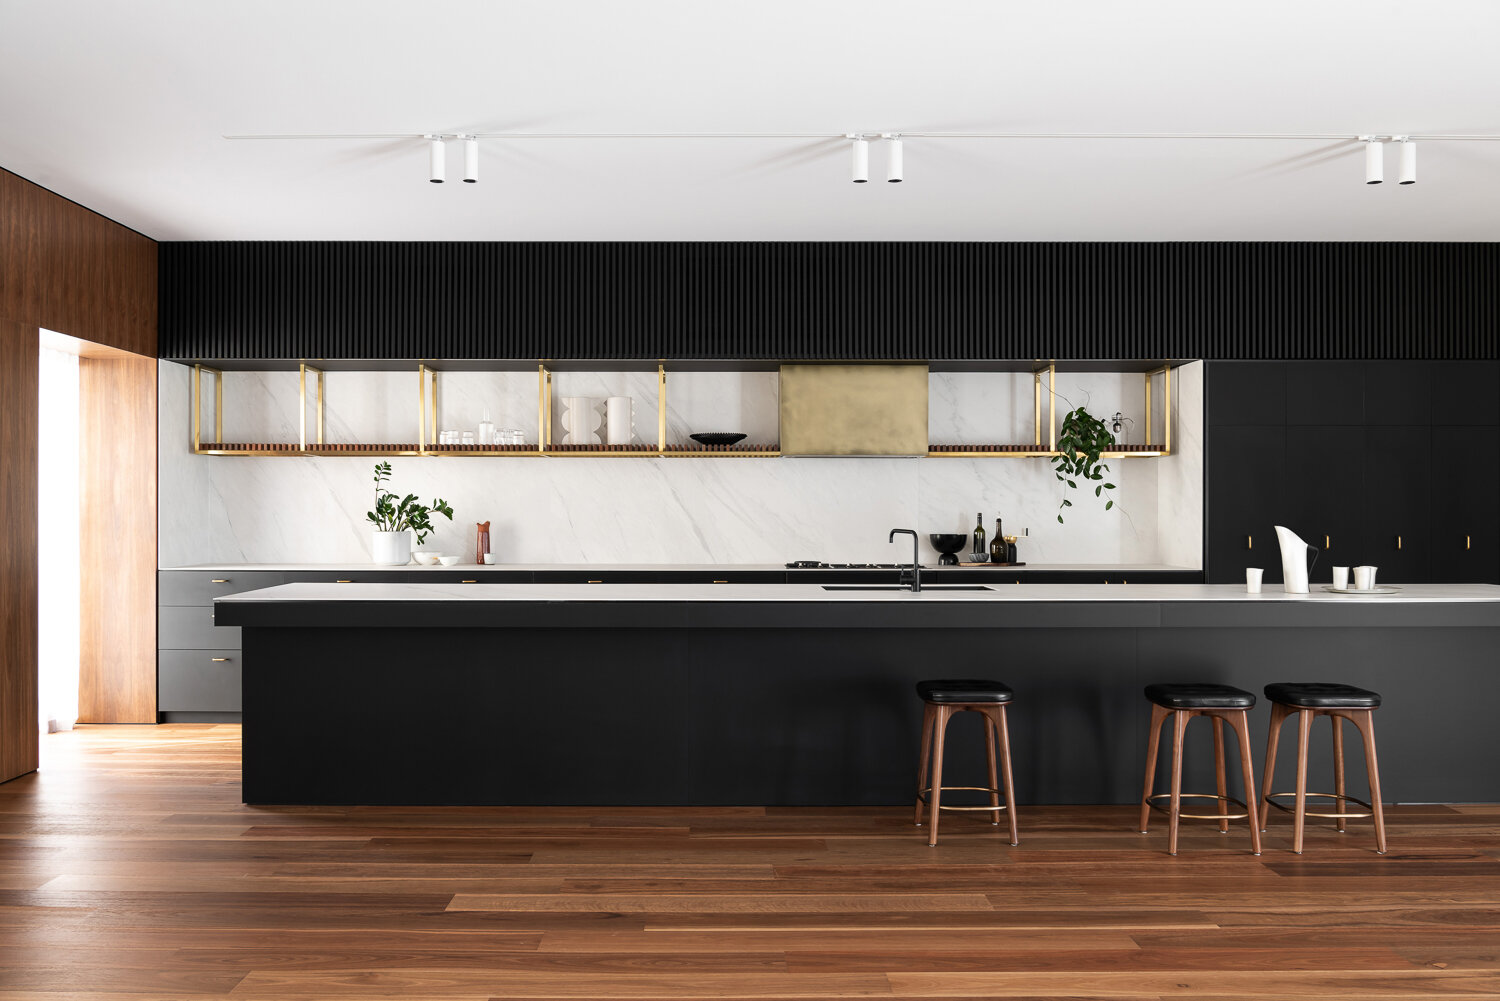 King St by David Barr Architects